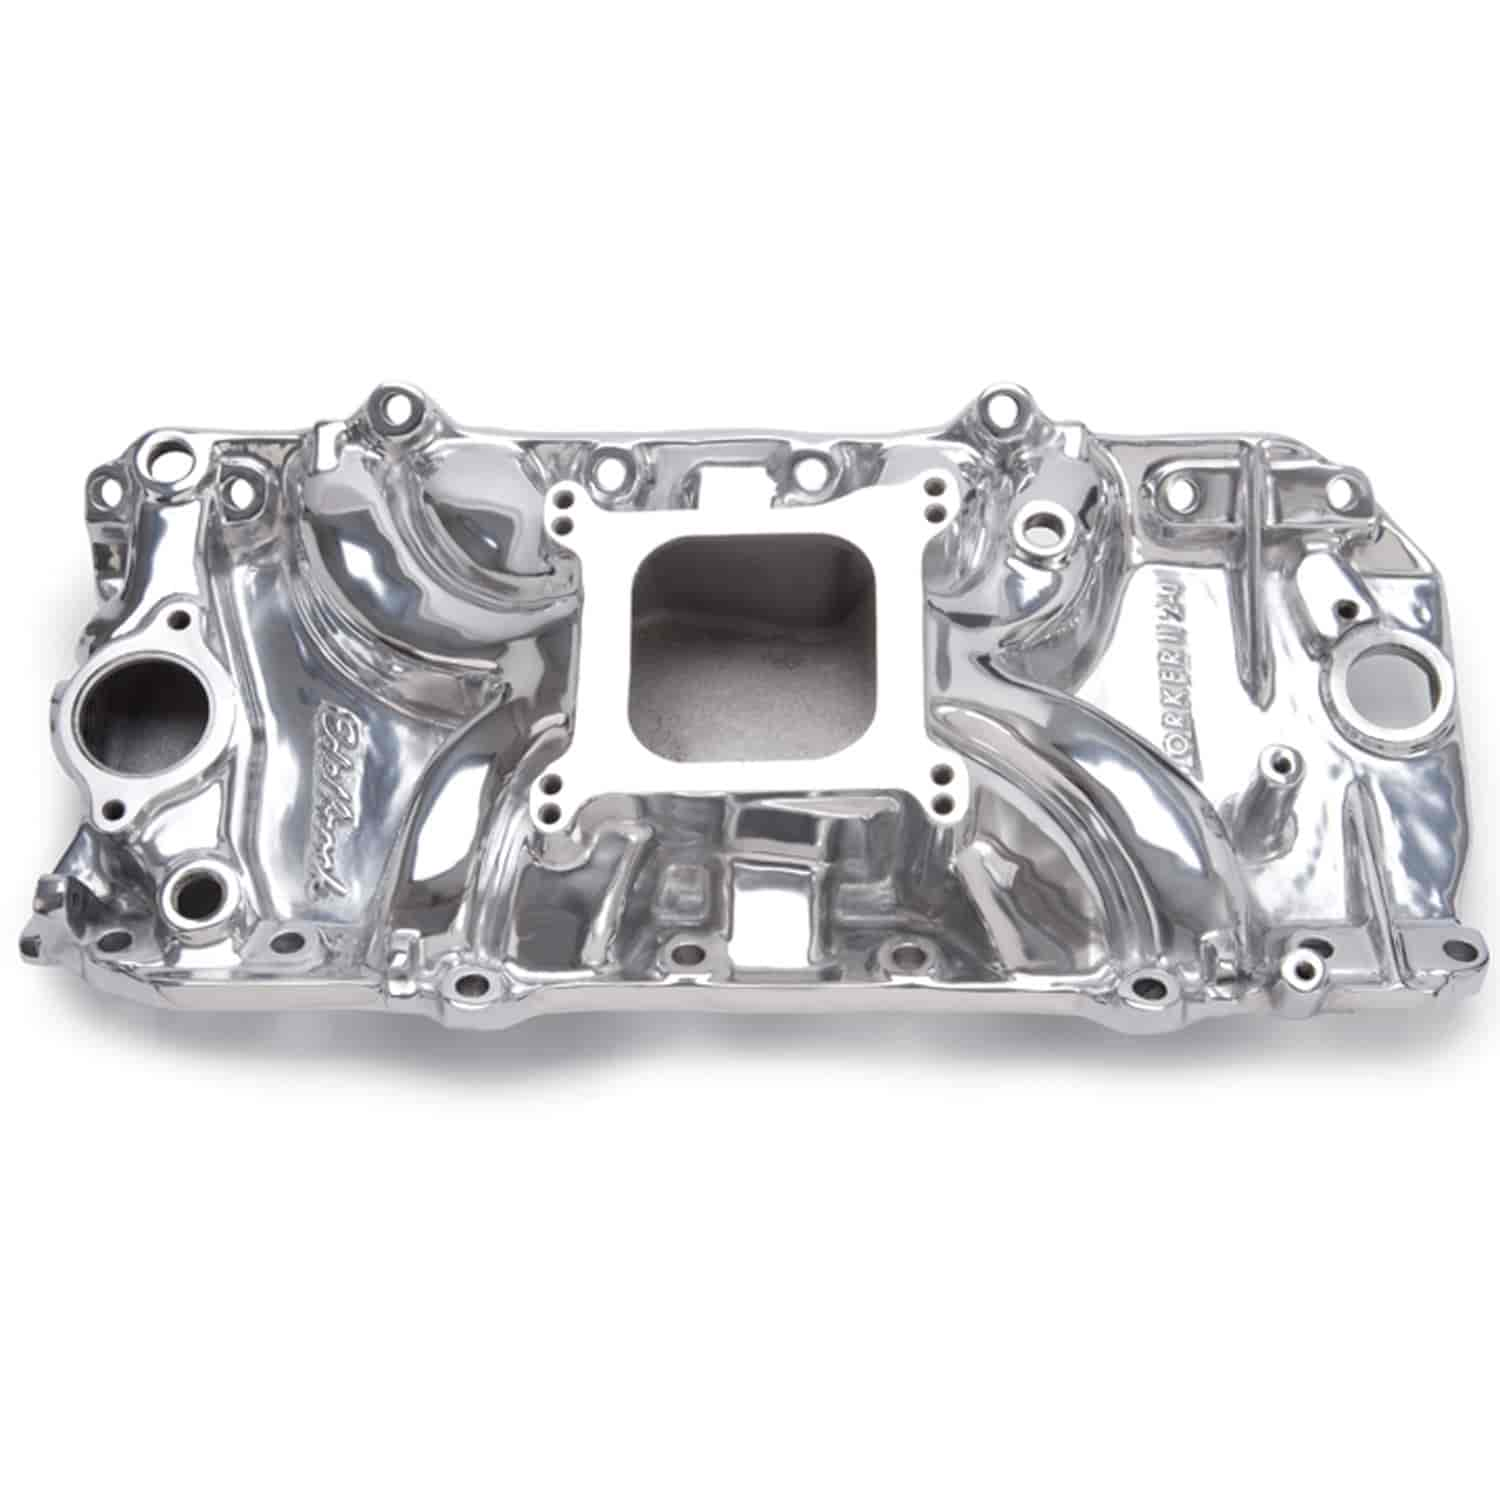 Edelbrock 50611 - Edelbrock Torker-II Manifolds and Kits for Chevy